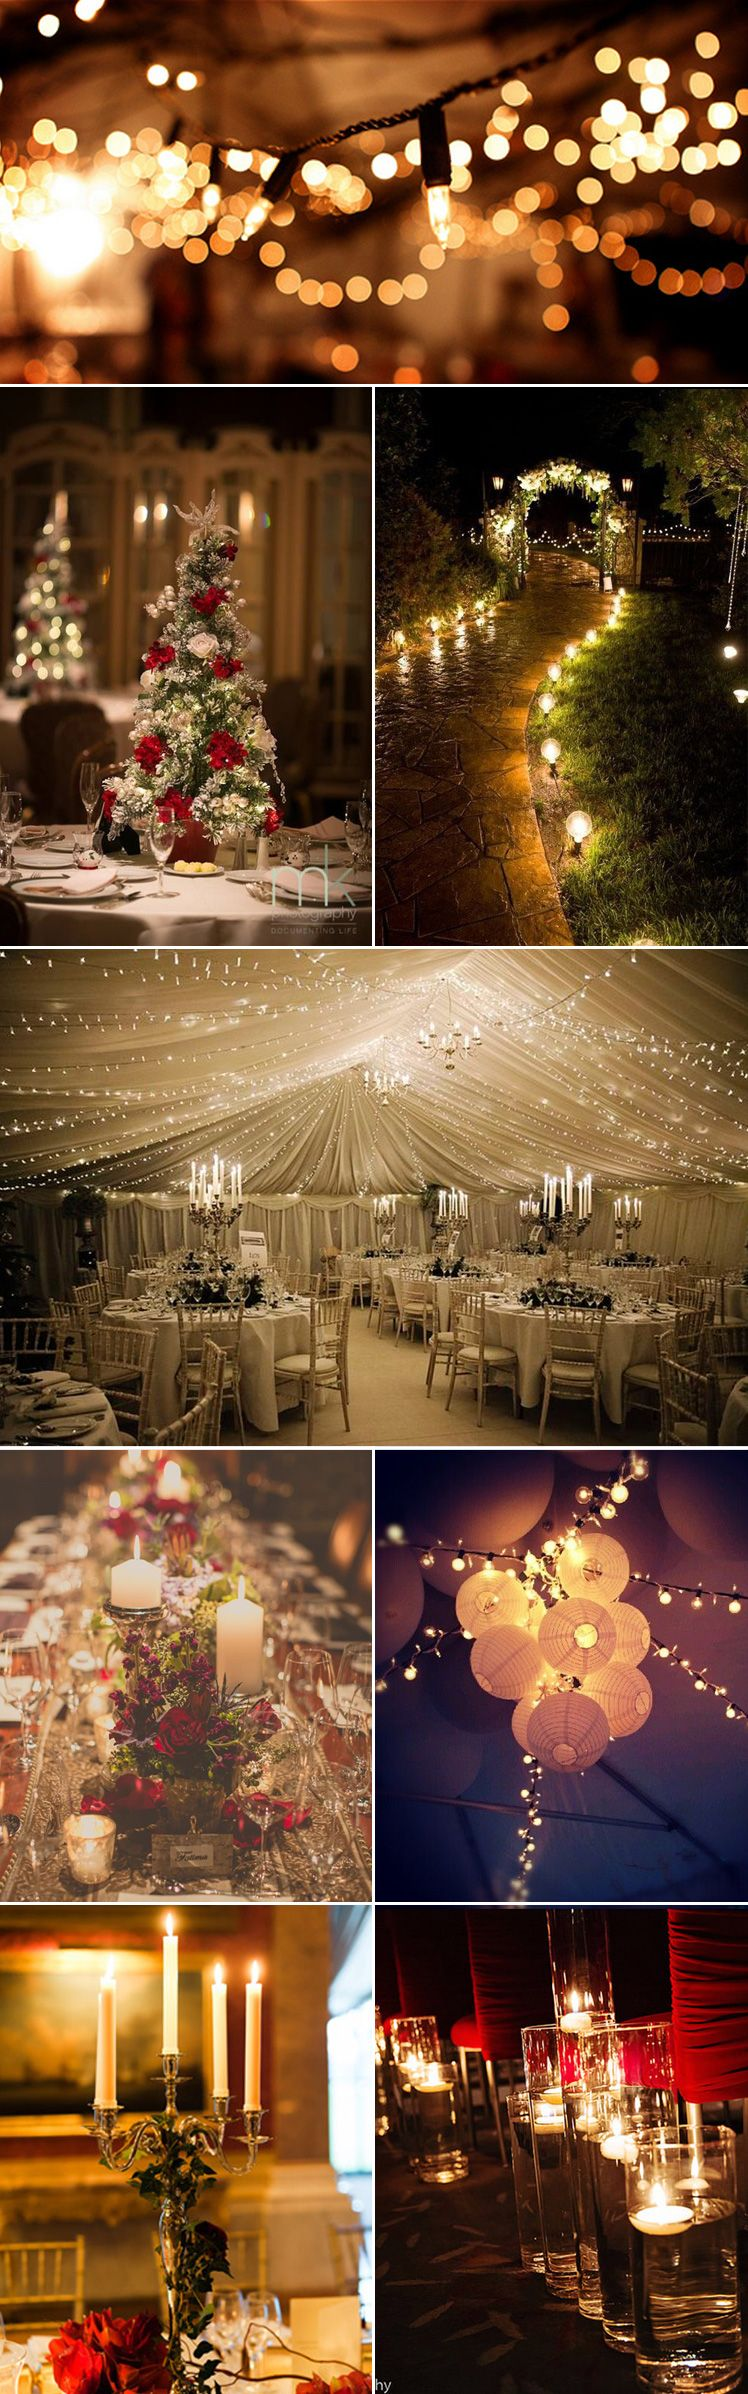 Viking wedding decorations  Festive Lighting Ideas for A Christmas Wedding  Lights Weddings